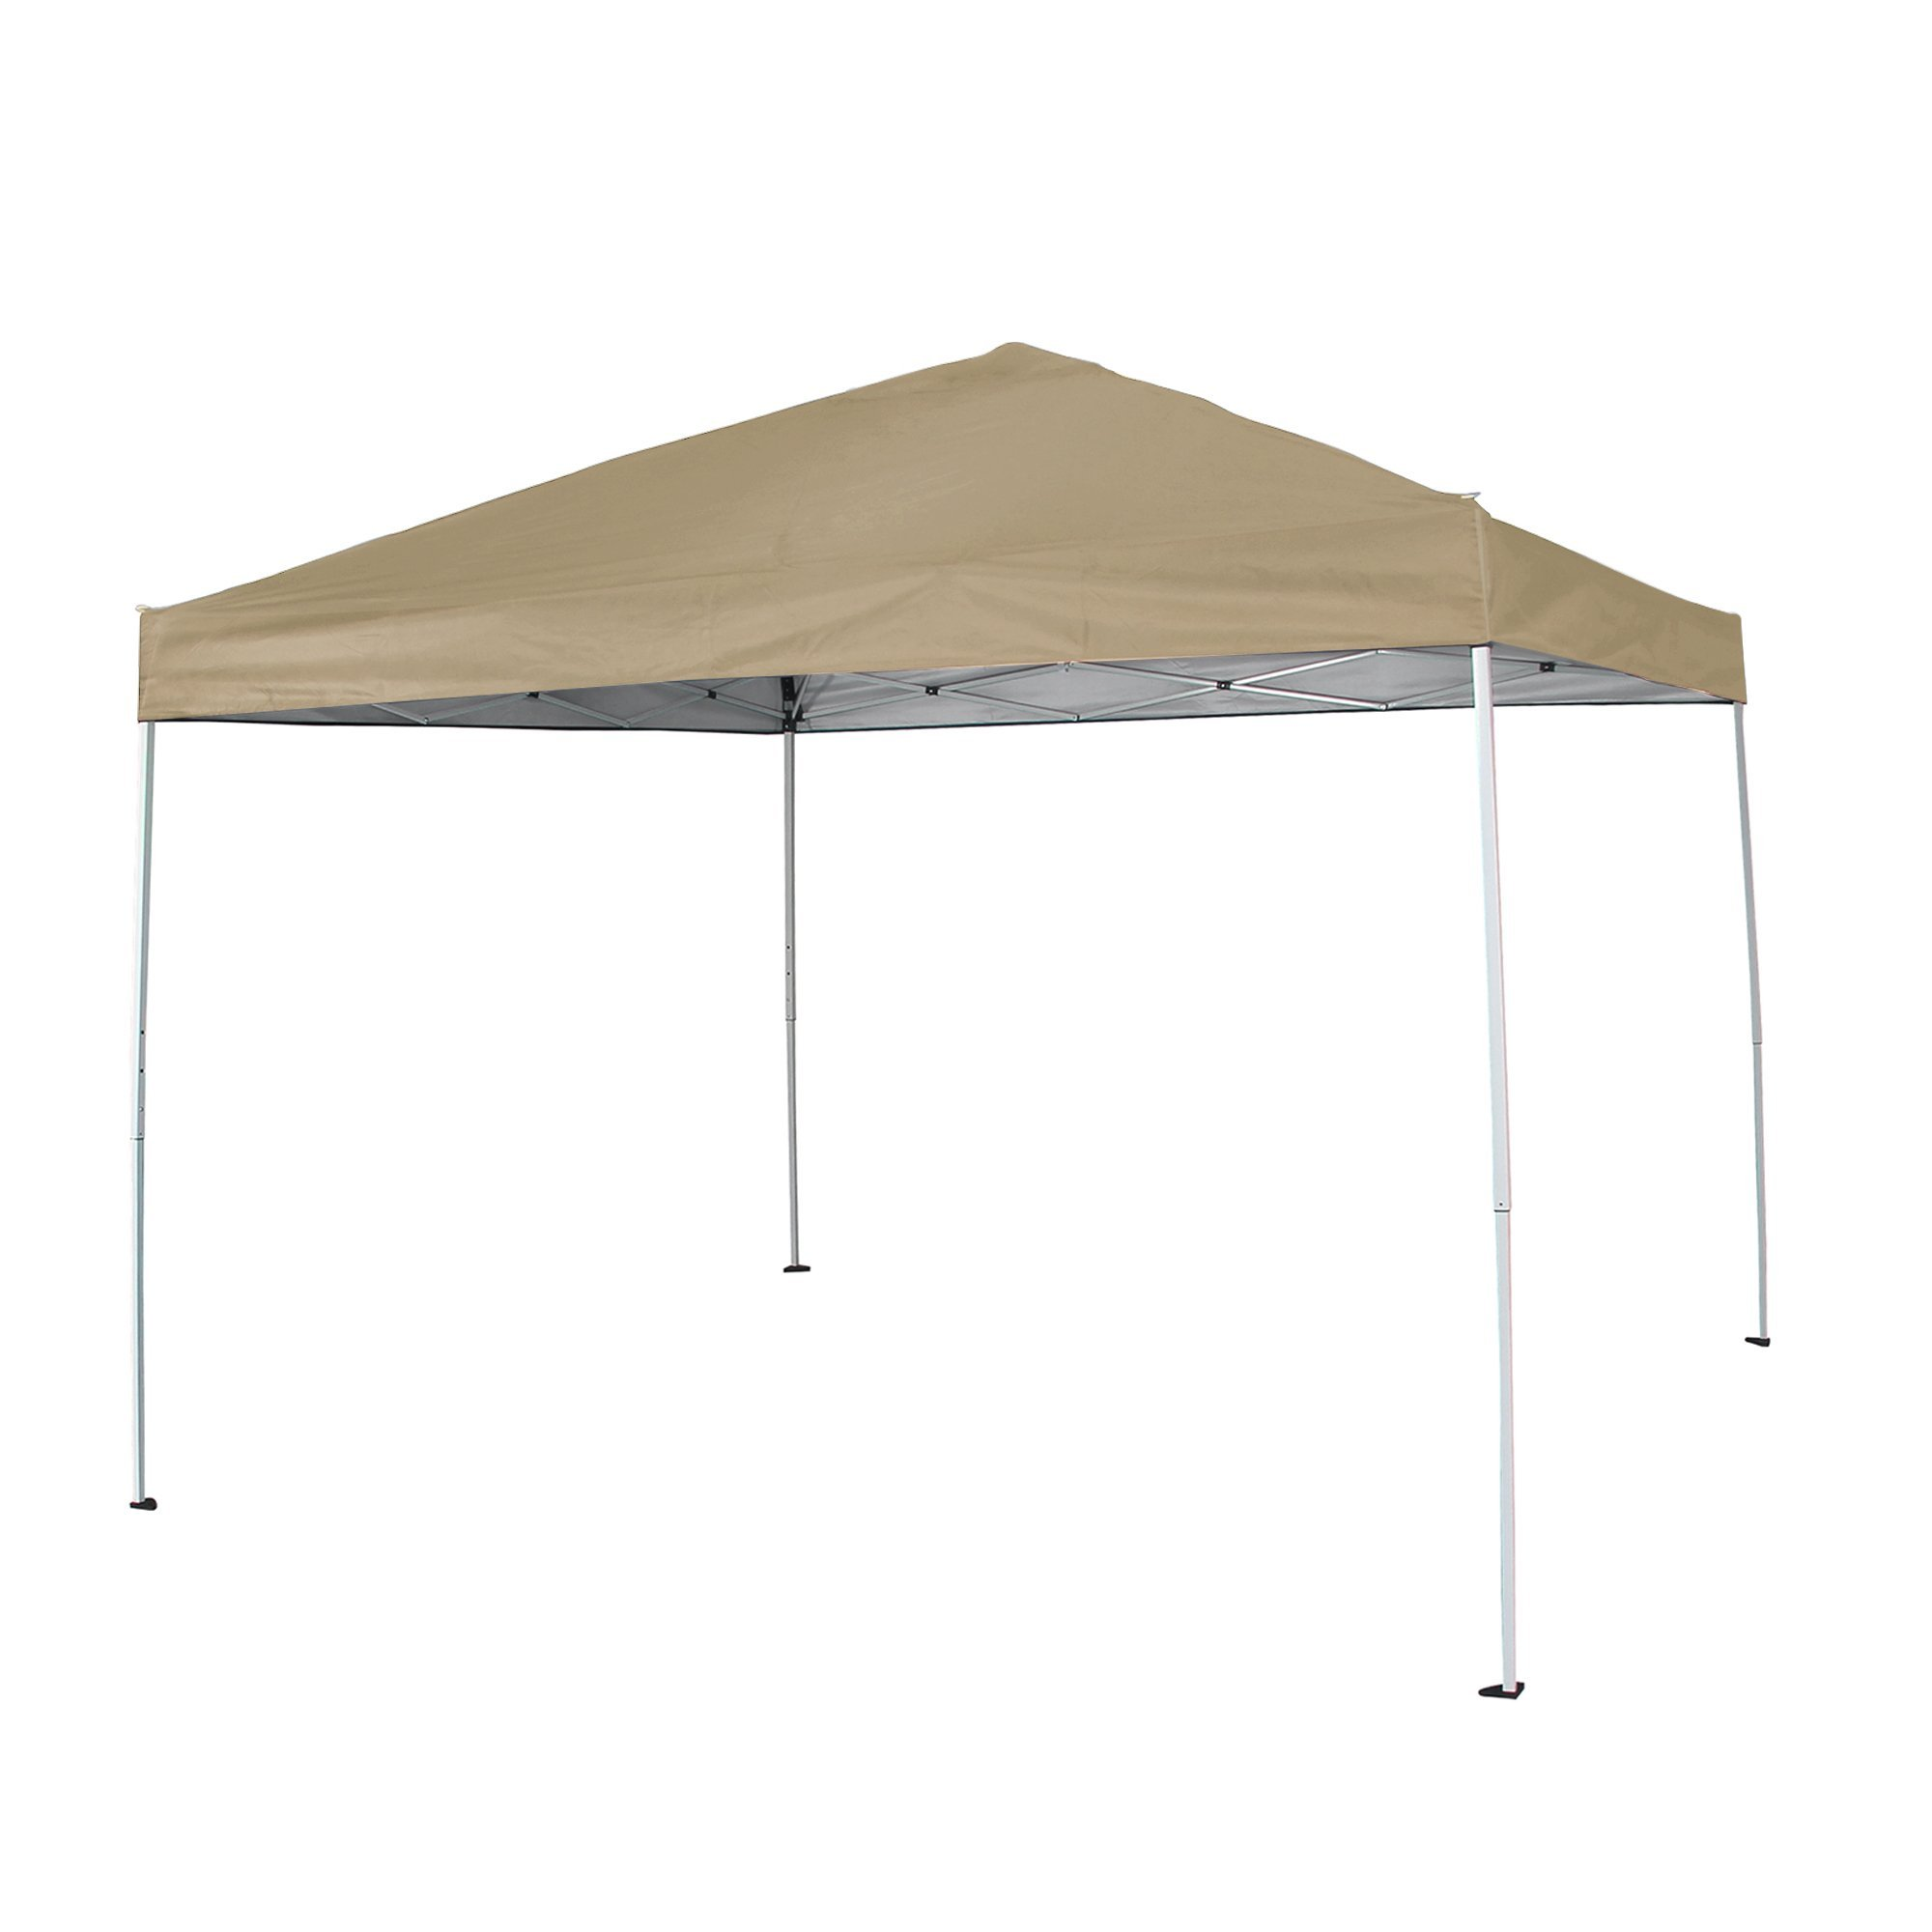 FurniTure Outdoor Canopy 10' x 10' Patio Canopy Garden Canopy Pop Up Canopy Instant Canopy Tent Easy Set Up with Carry Bag, Tan